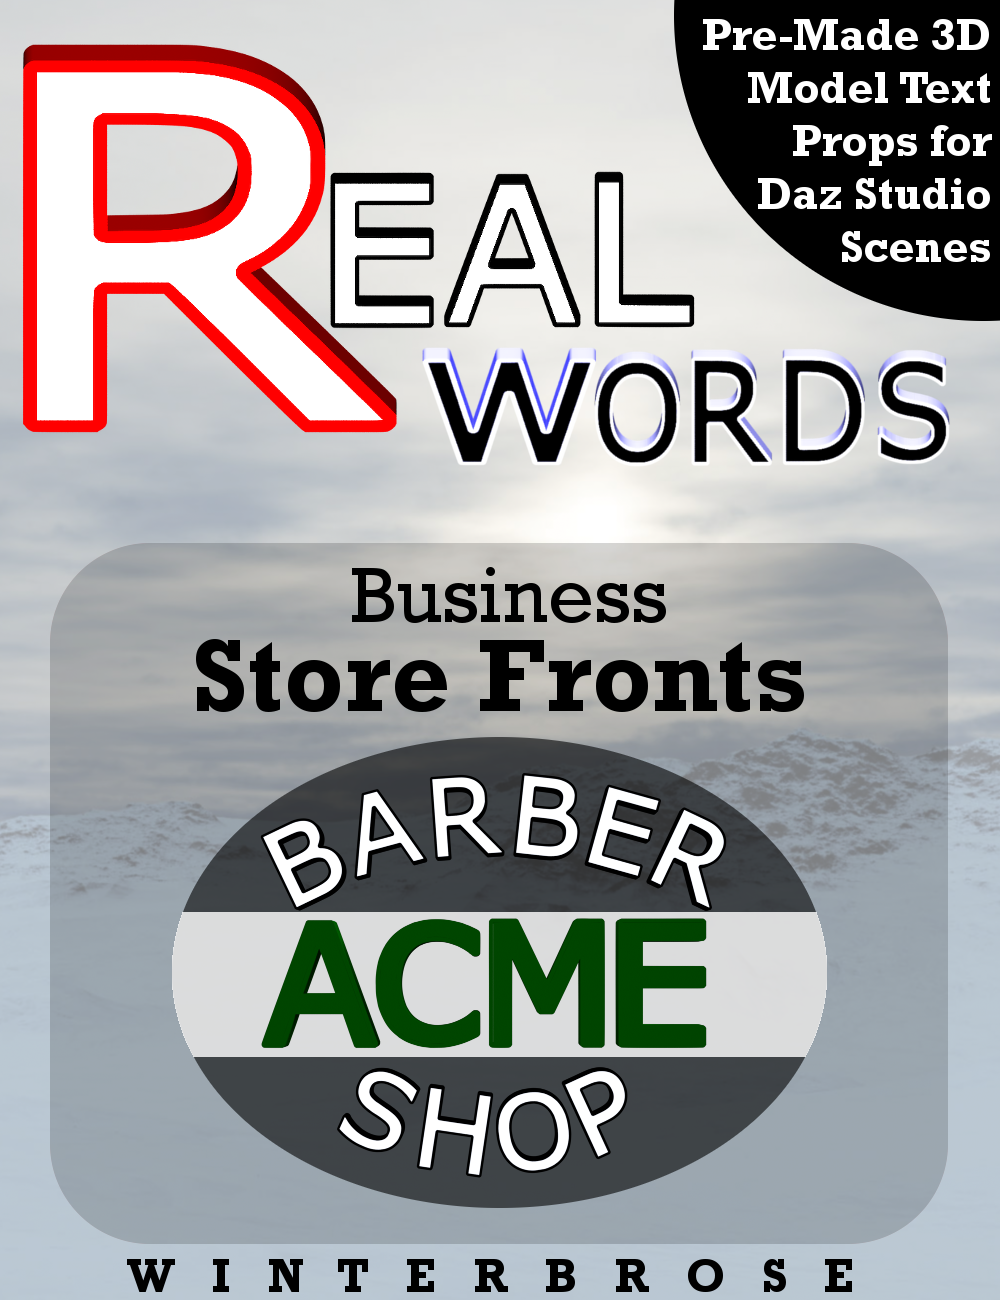 REAL-WORDS: Business Storefronts for Daz Studio